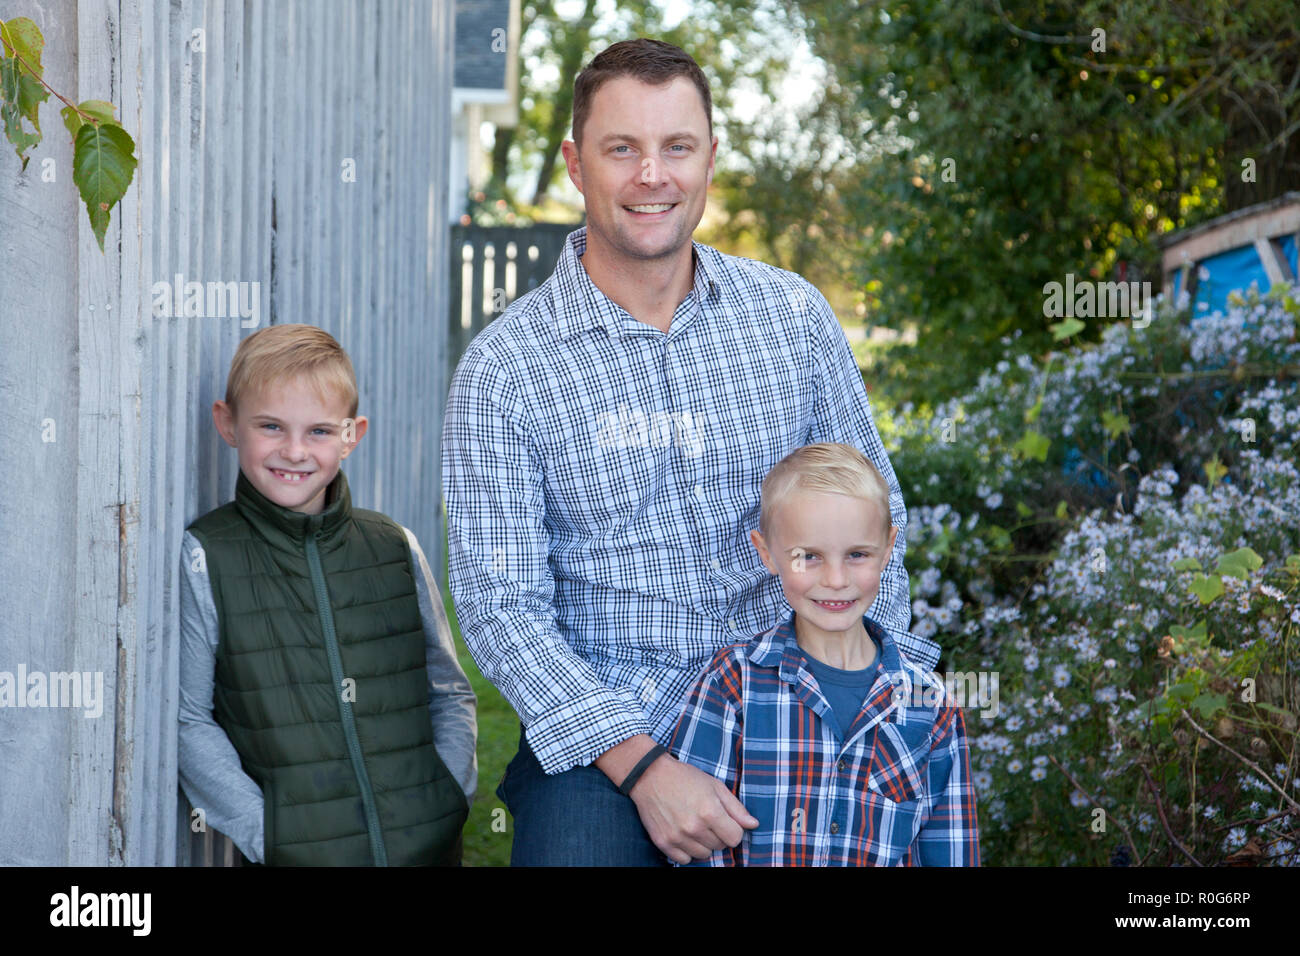 Smiling trio of three blond guys, a father and his two sweet sons - Stock Image